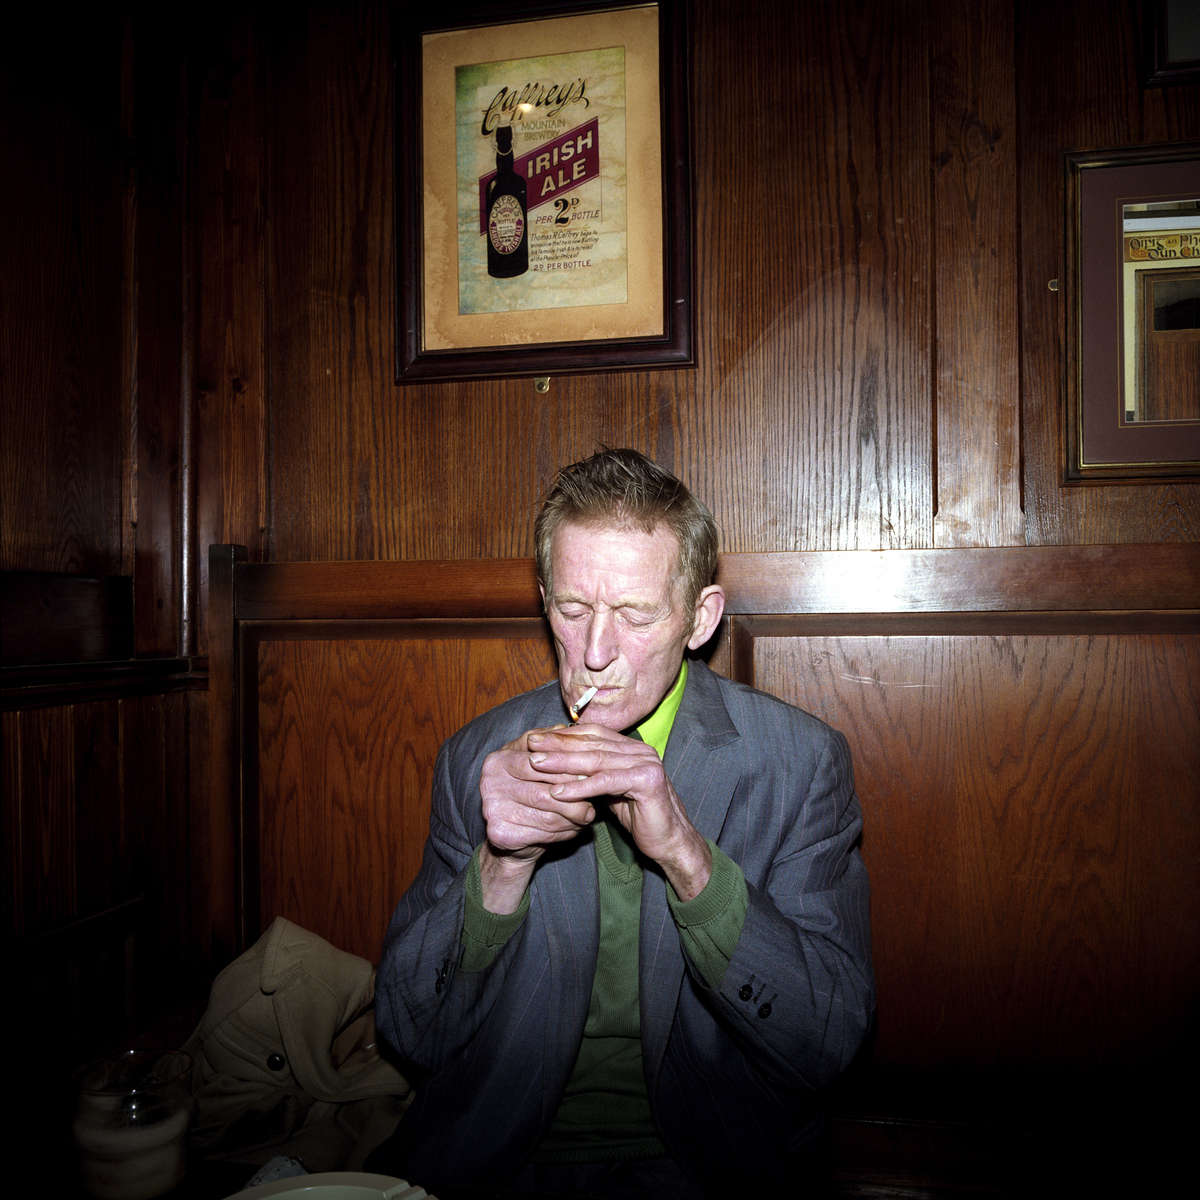 In a north London pub an elderly man lights up a cigarette to accompany his first alcoholic drink since undergoing surgery 12 months earlier. March 2001